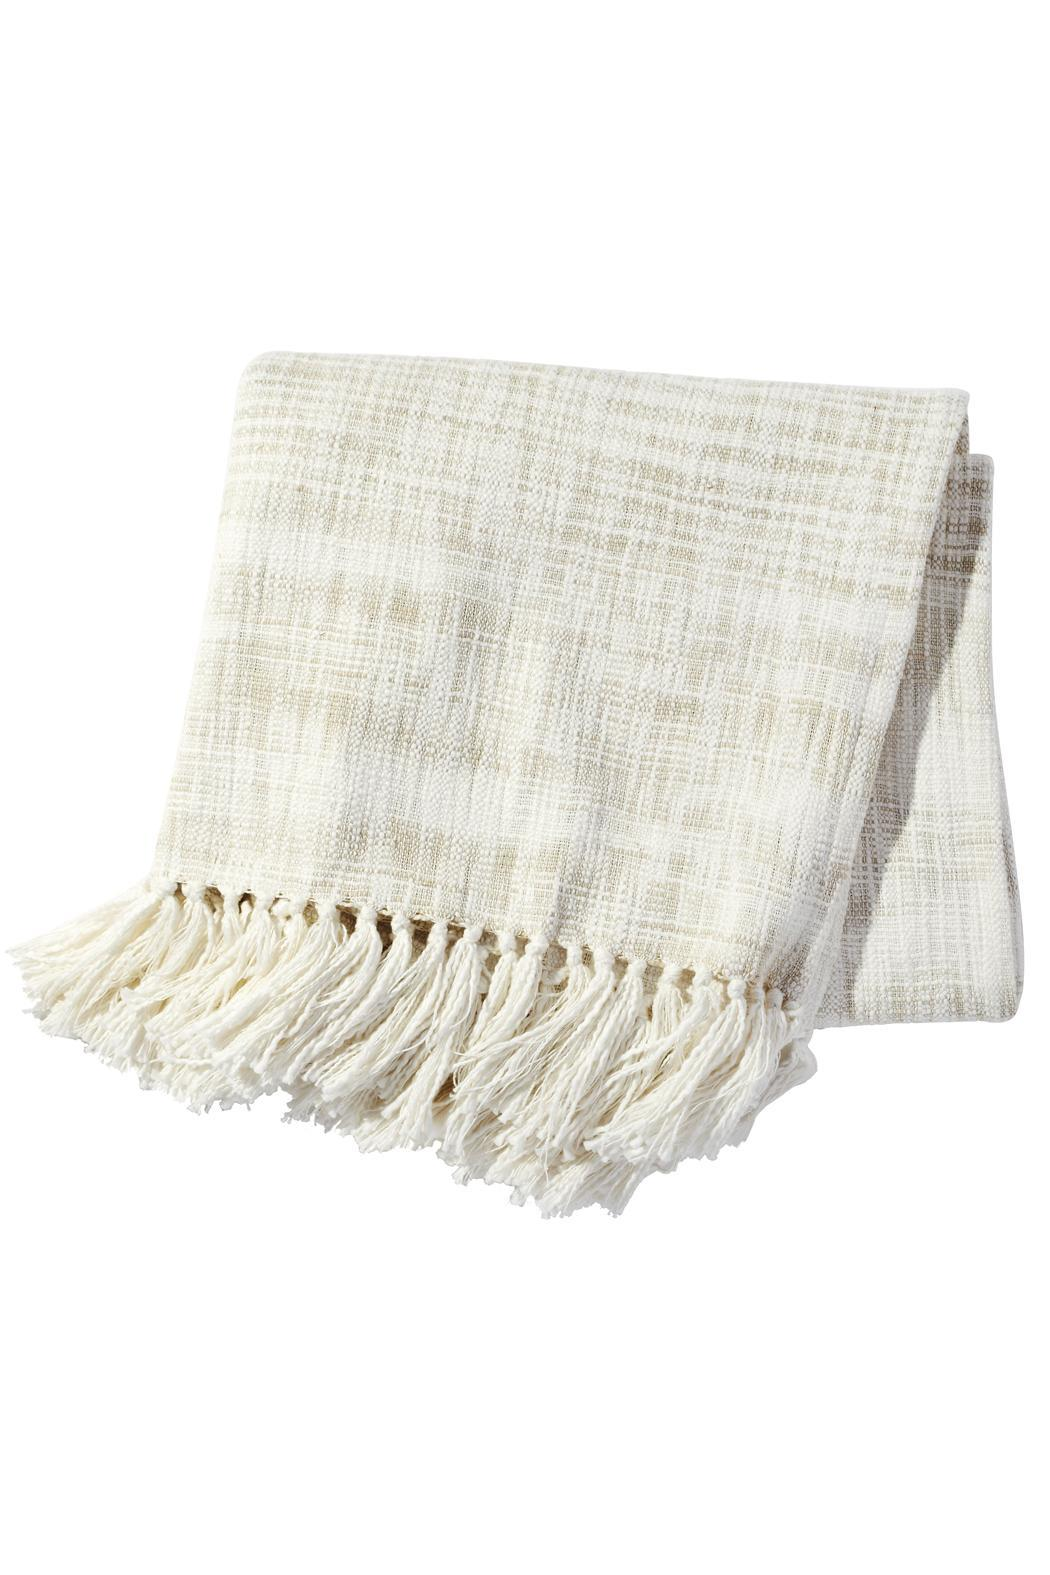 John Robshaw Cream Space-Dyed Throw - Main Image